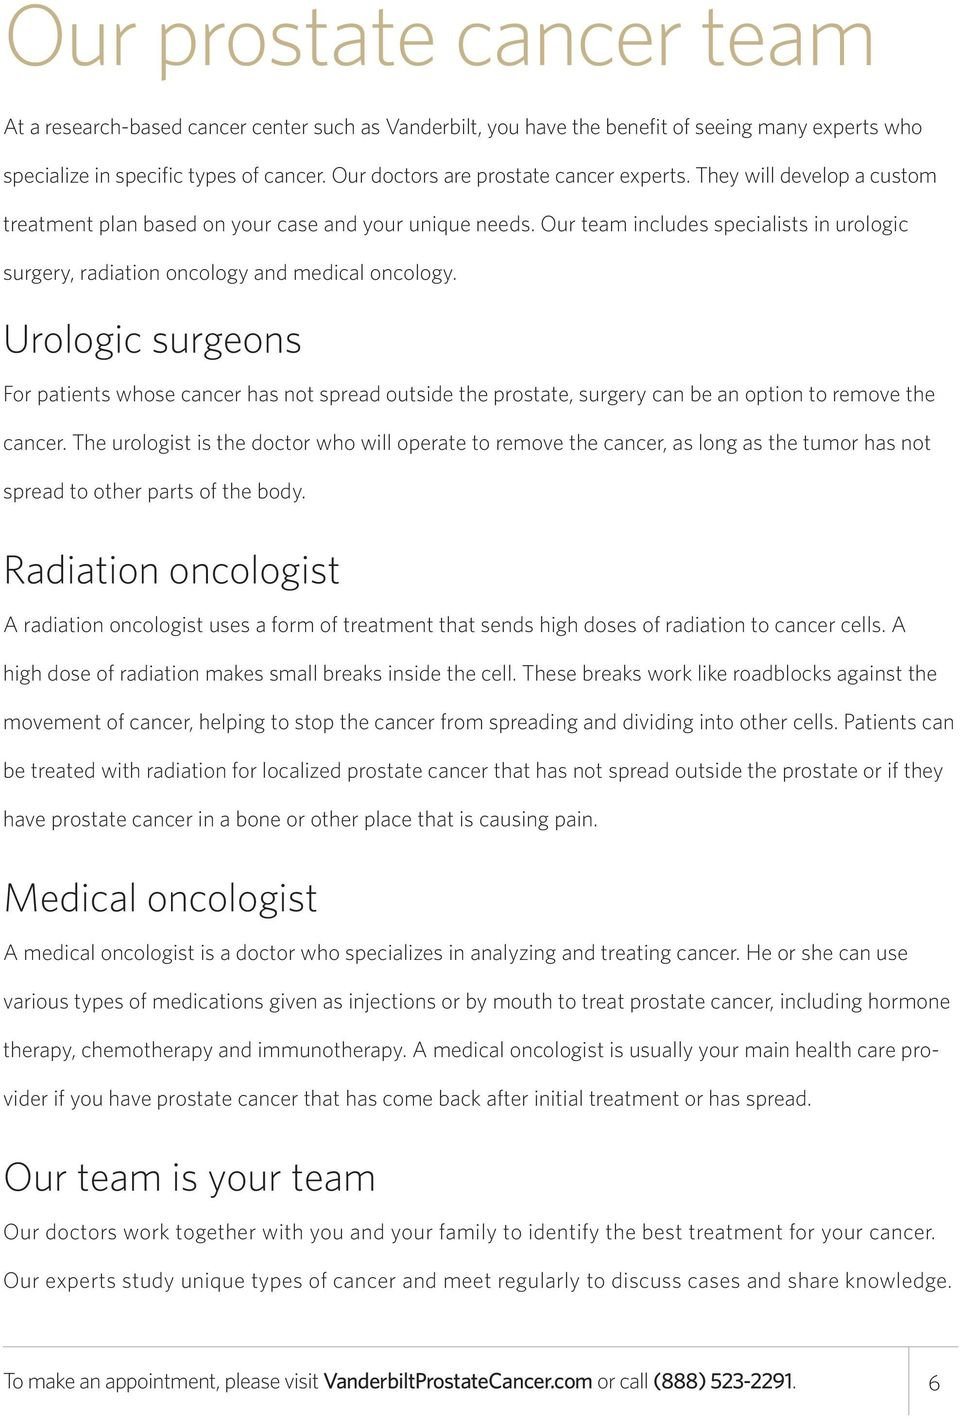 Our team includes specialists in urologic surgery, radiation oncology and medical oncology.